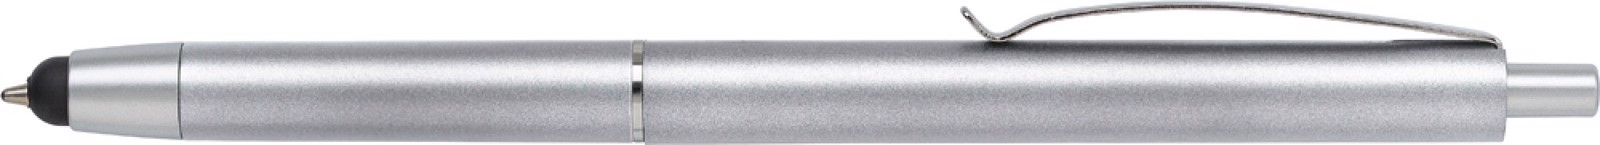 Plastic ballpen with rubber tip - Silver